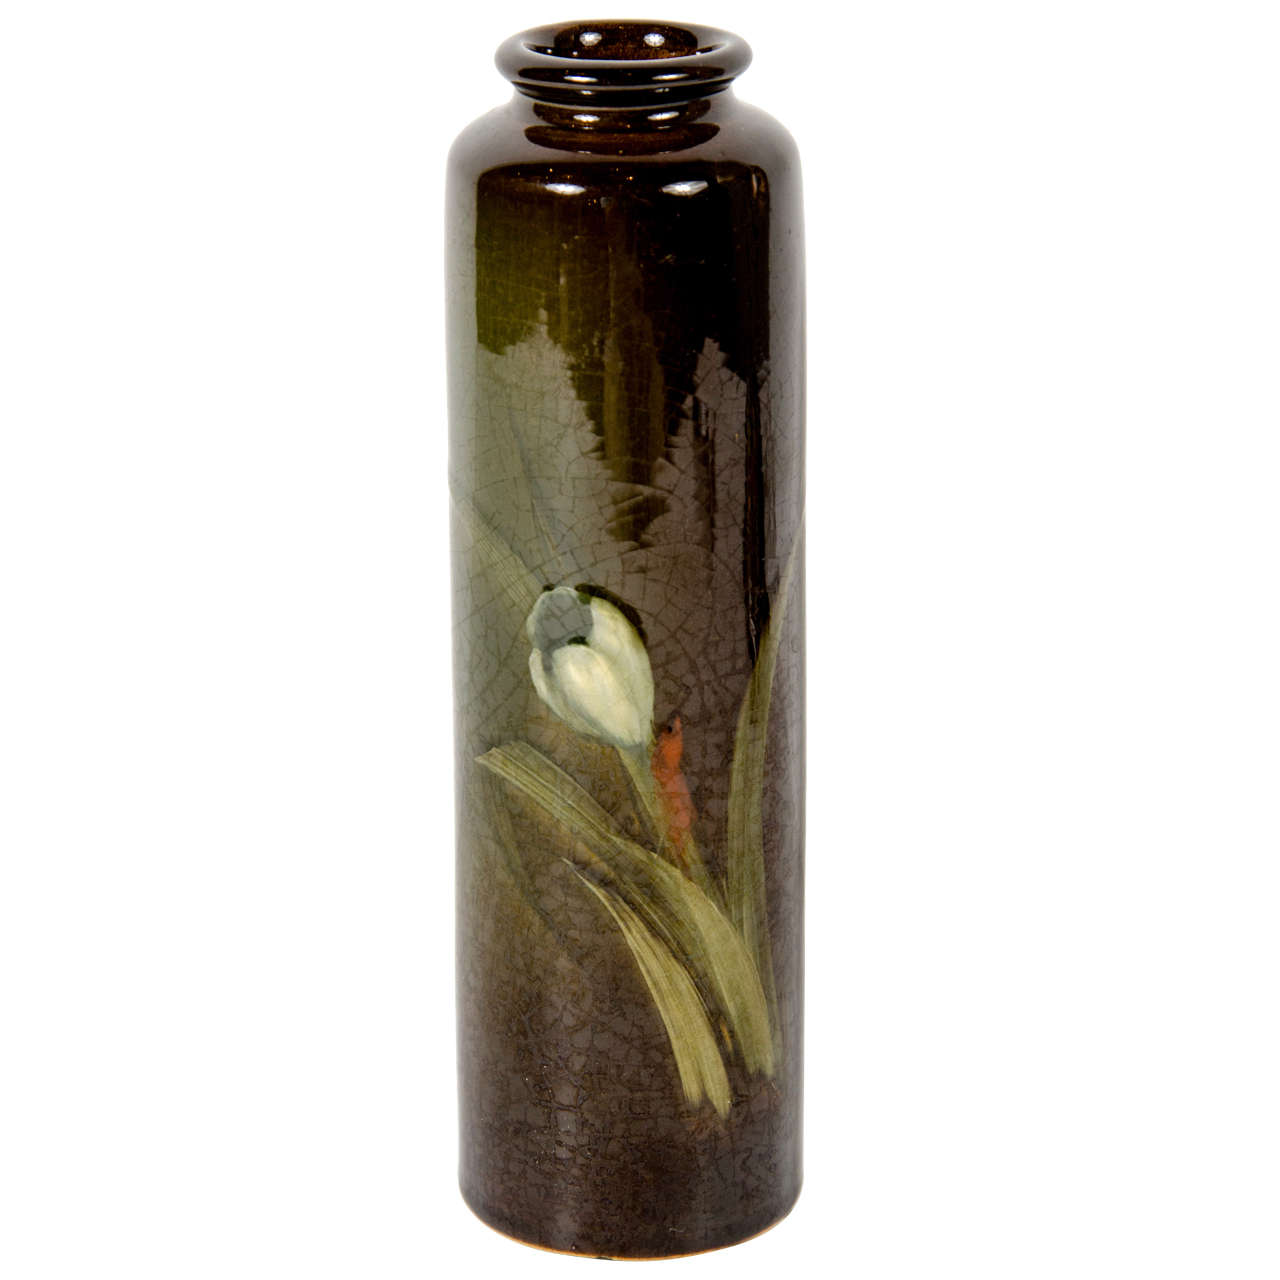 Arts and crafts ceramic vase by rookwood at 1stdibs for Arts and crafts vases pottery